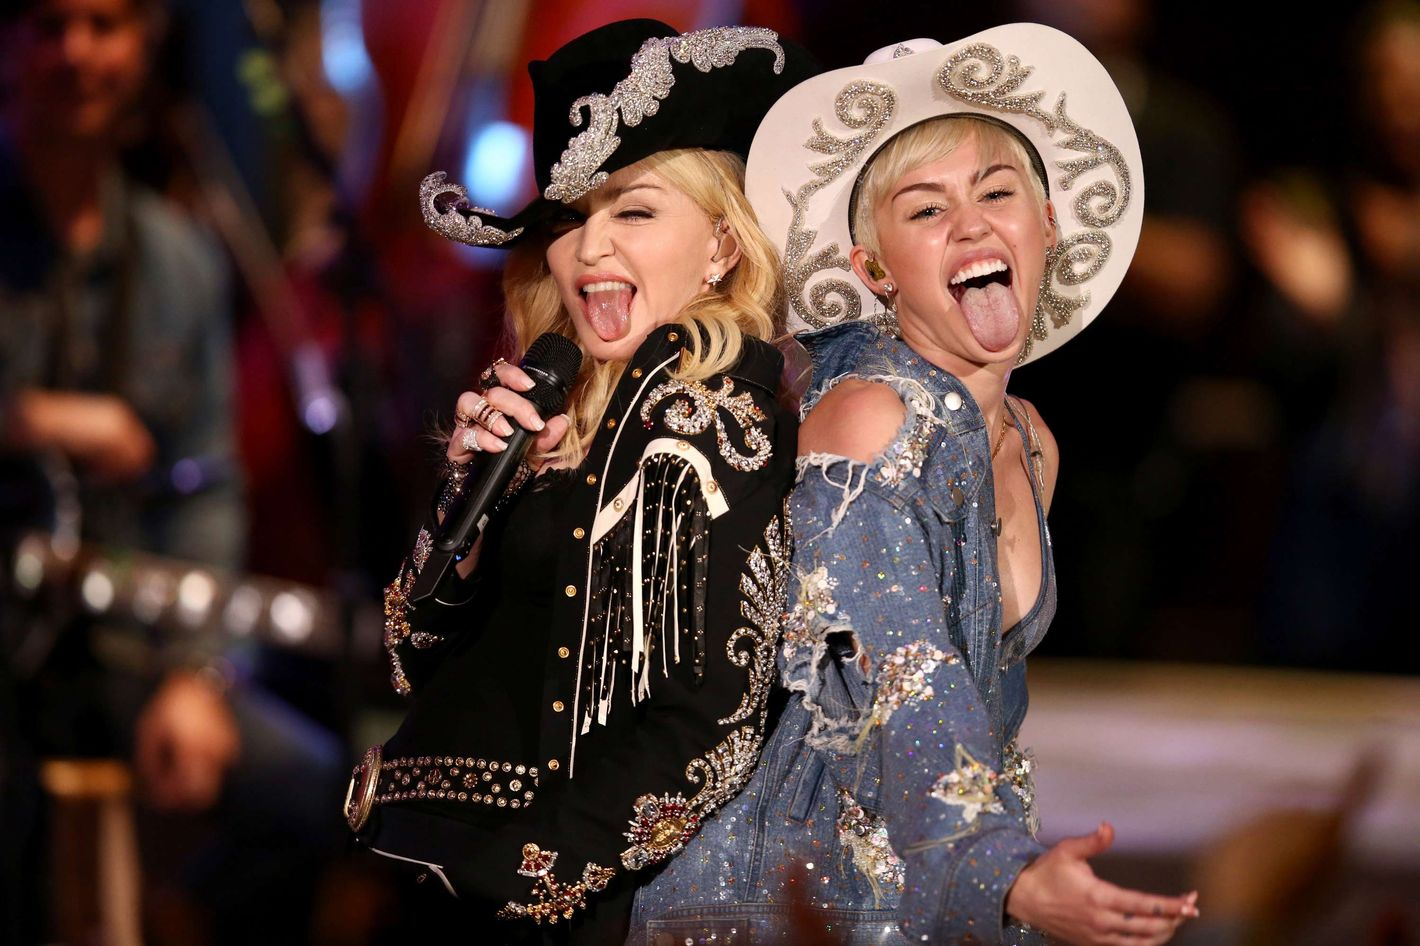 Miley and Madonna Don Matching Cowgirl Outfits, Tongues